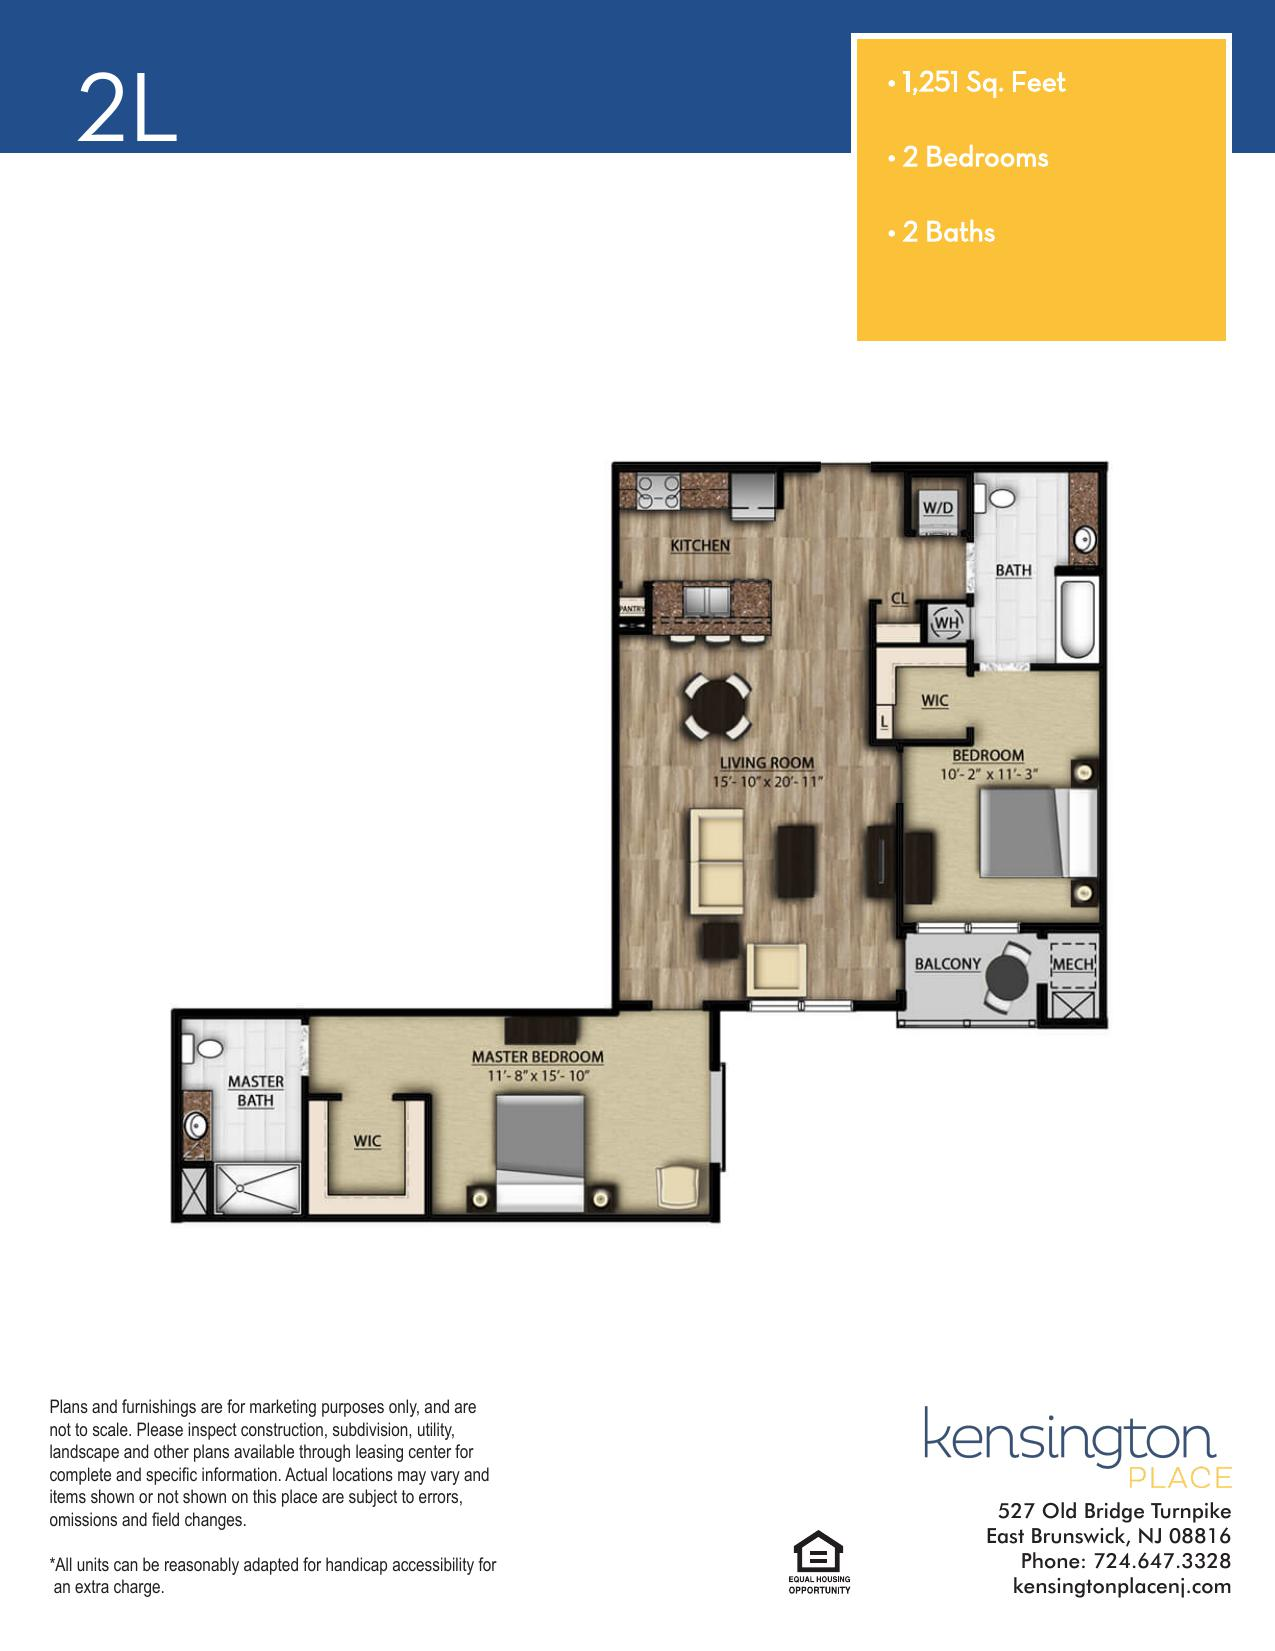 Kensington Place Apartment Floor Plan 2L